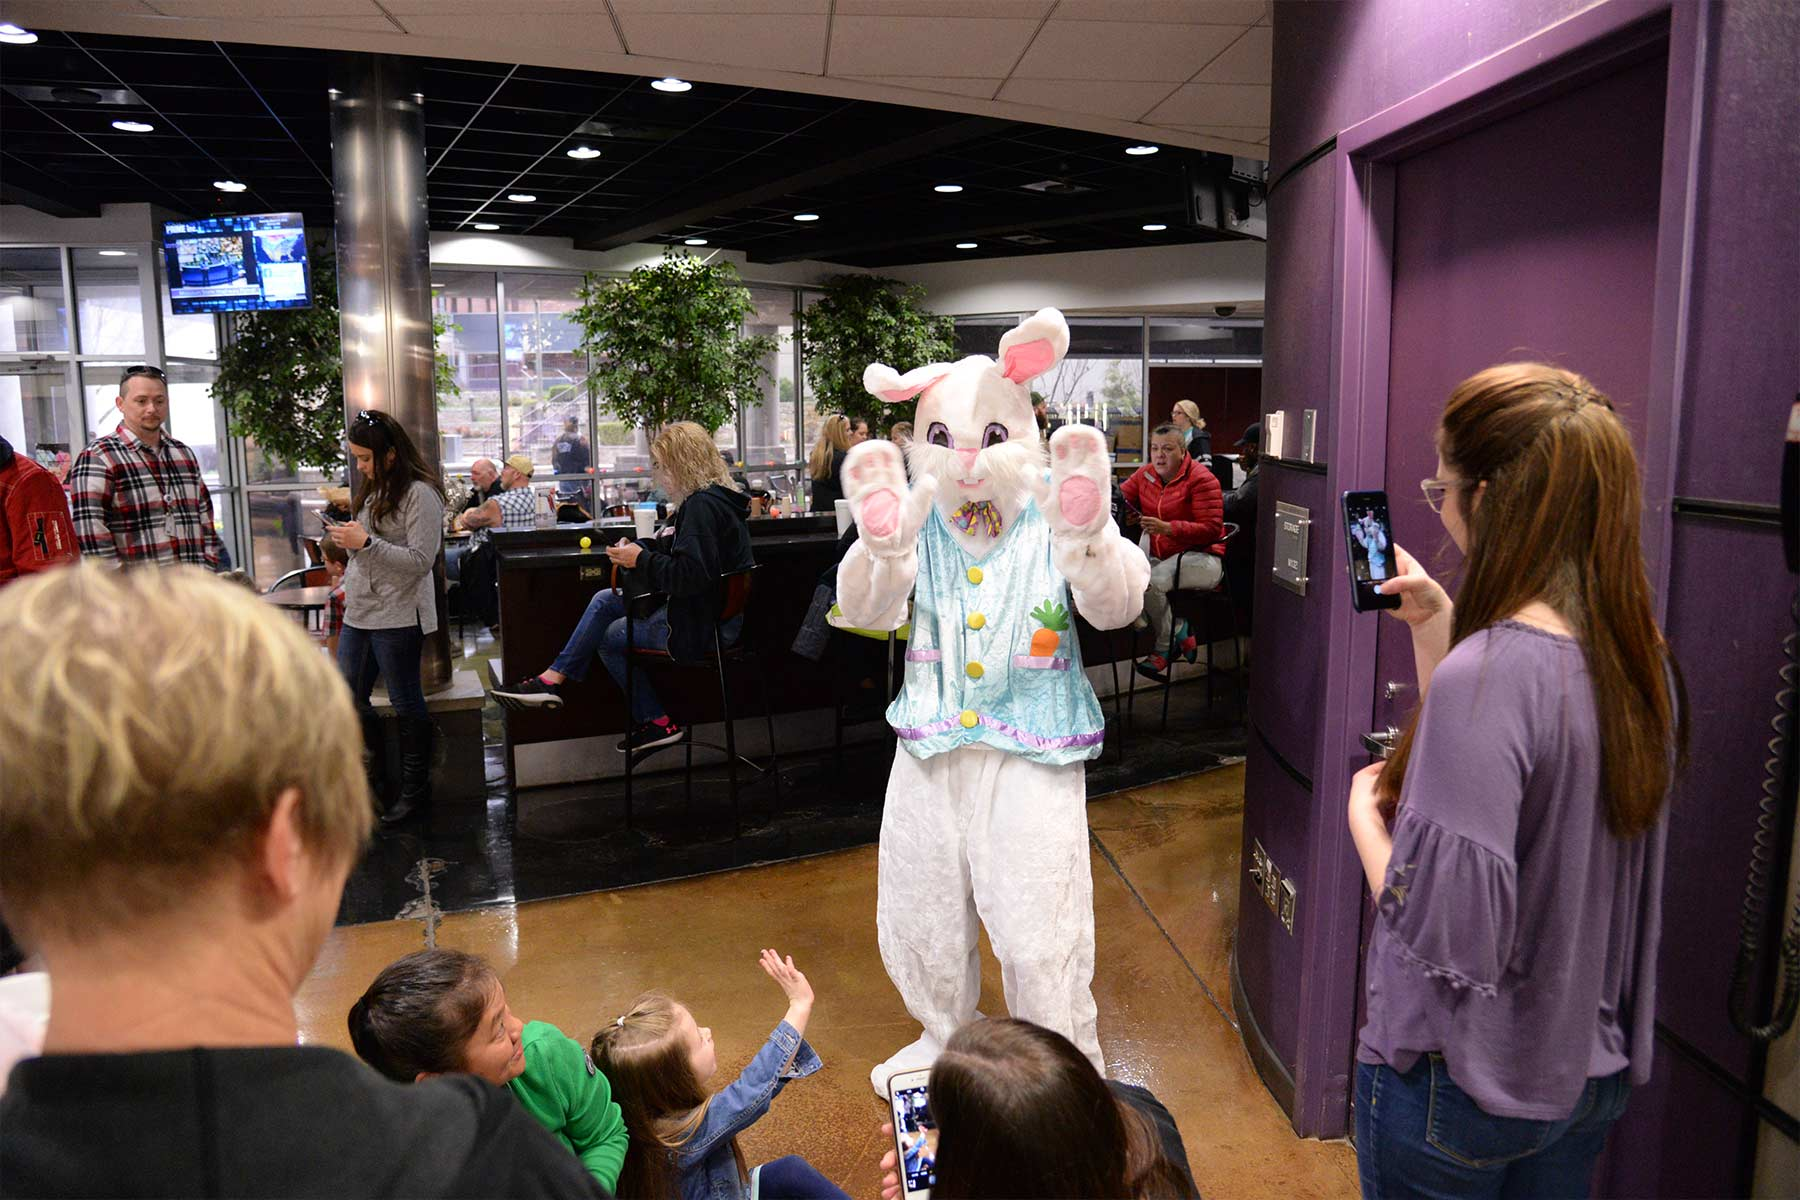 The Easter bunny greeting children and their parents during Prime Inc.'s annual Easter Egg Hunt.